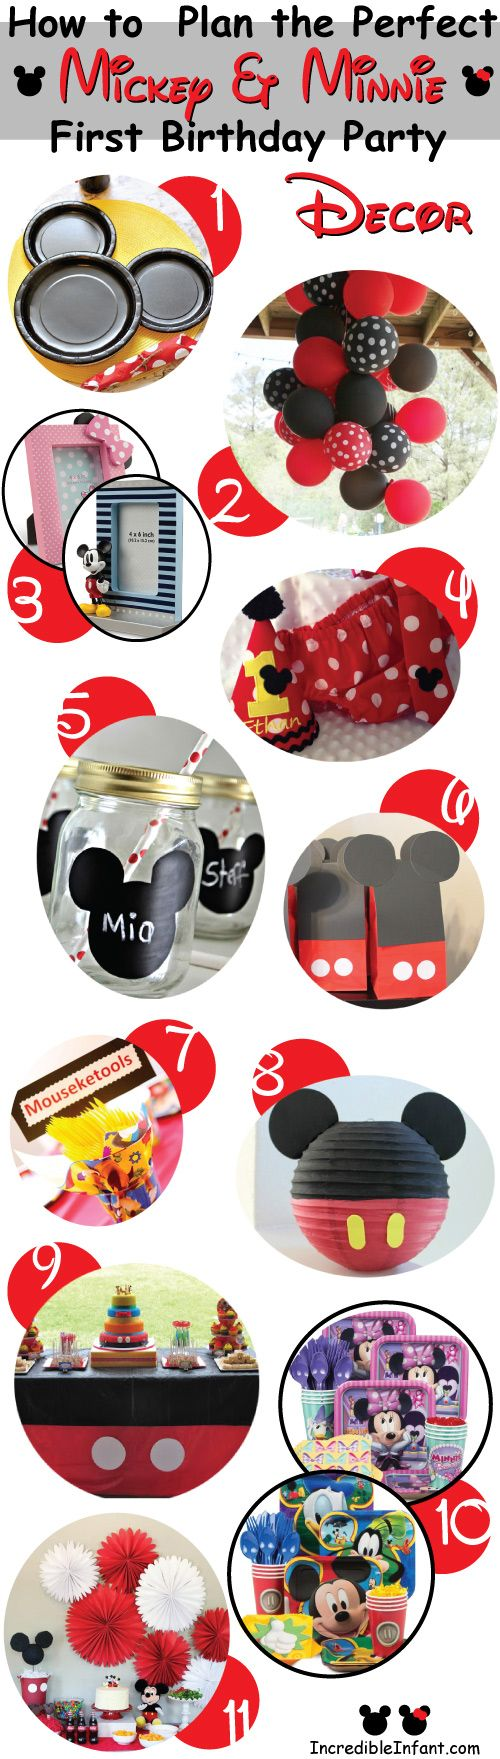 Mickey First Birthday Party Decoration Ideas - http://incredibleinfant.com